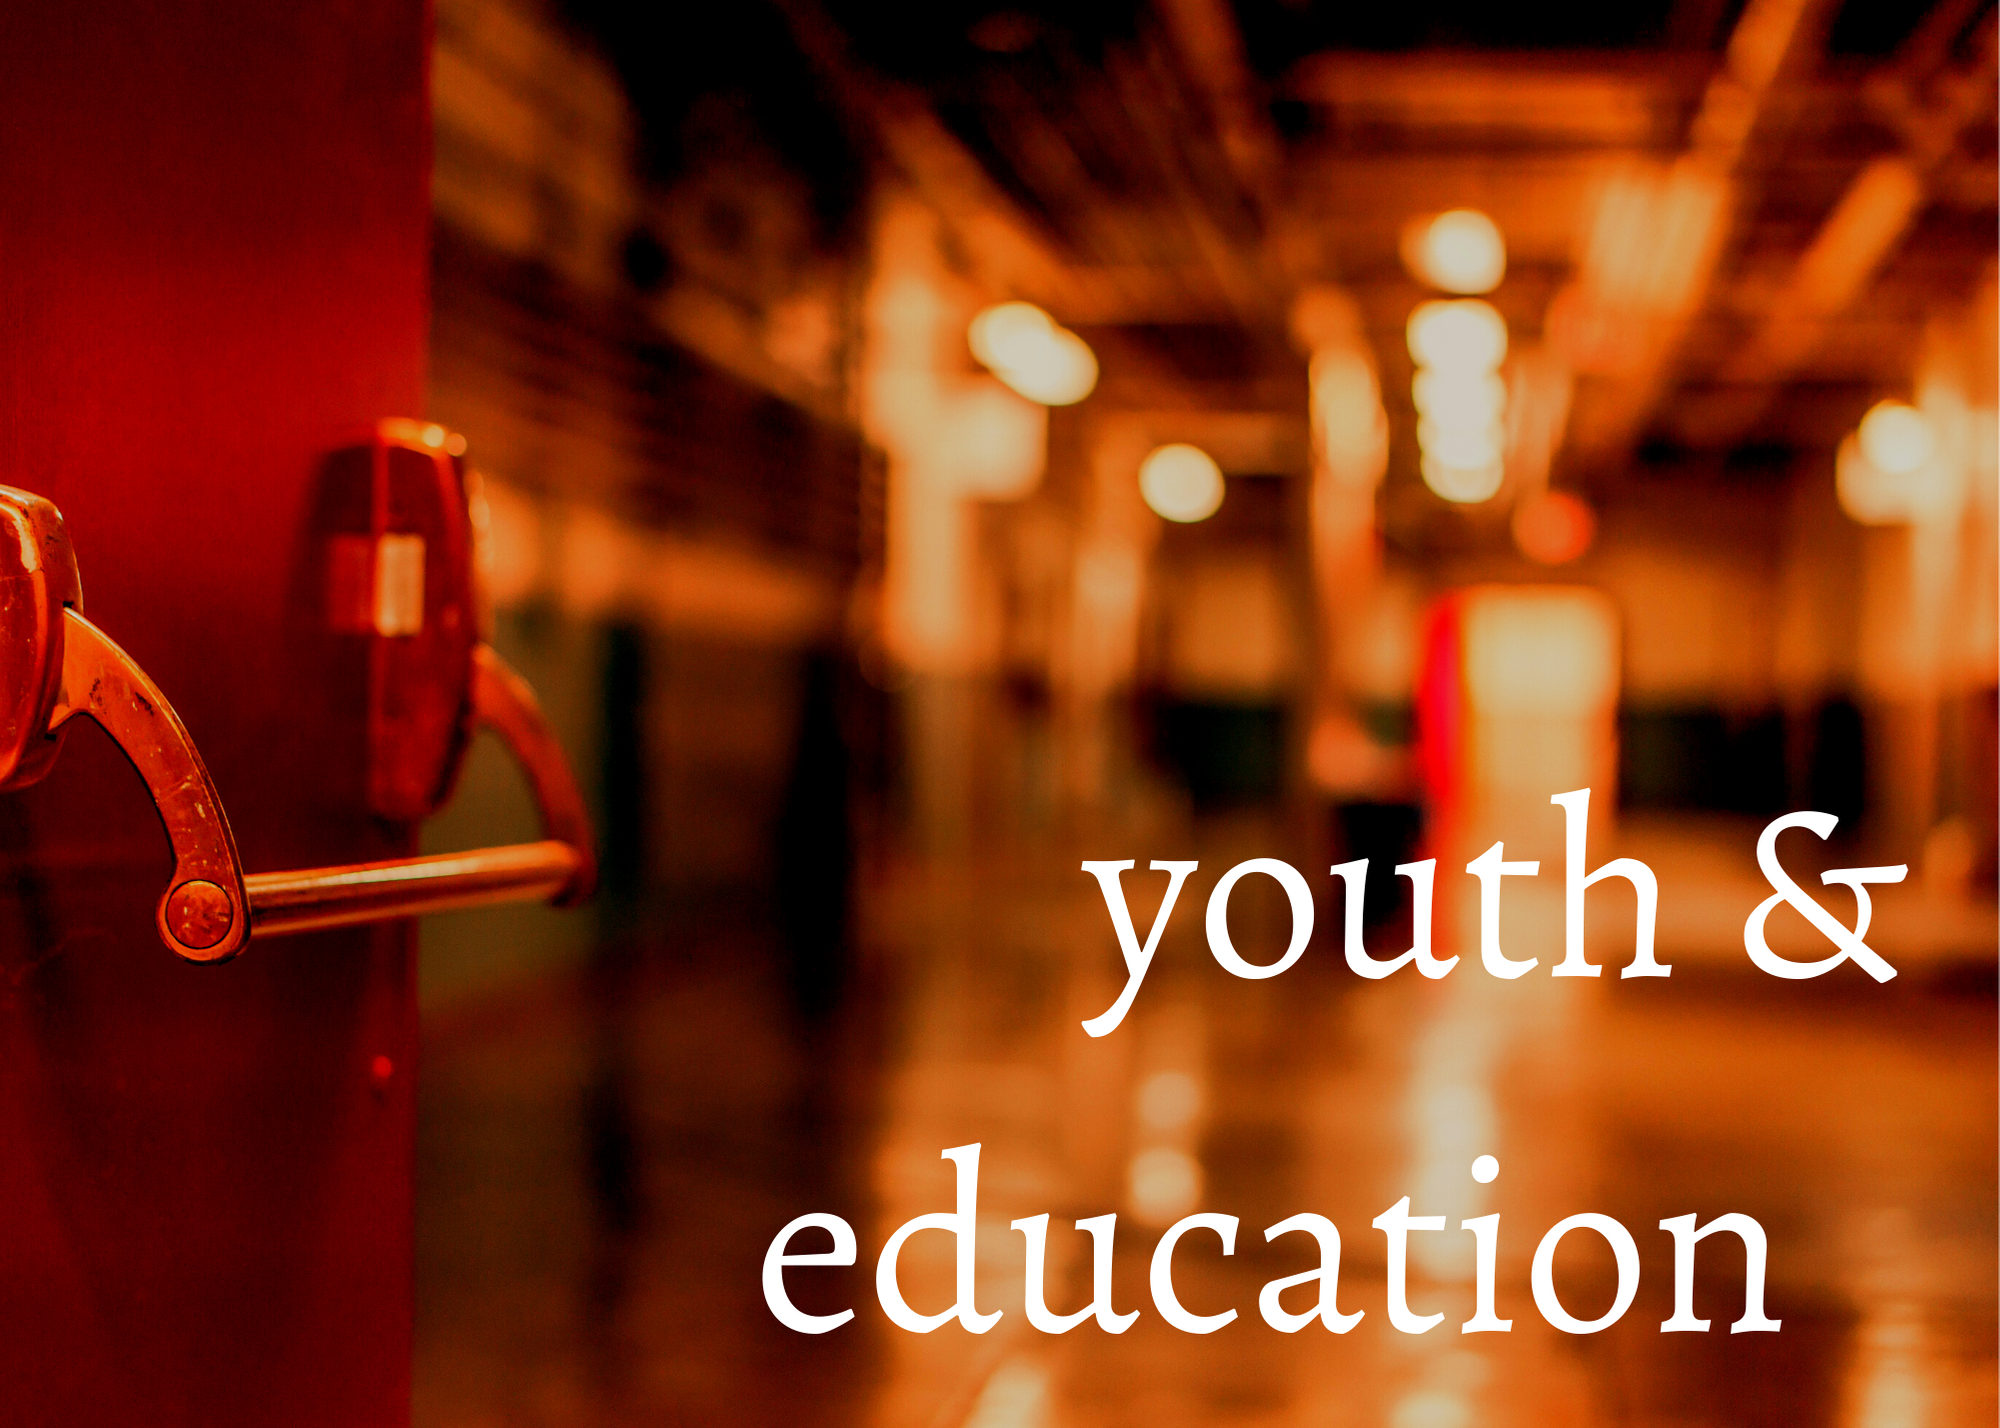 Youth & Education